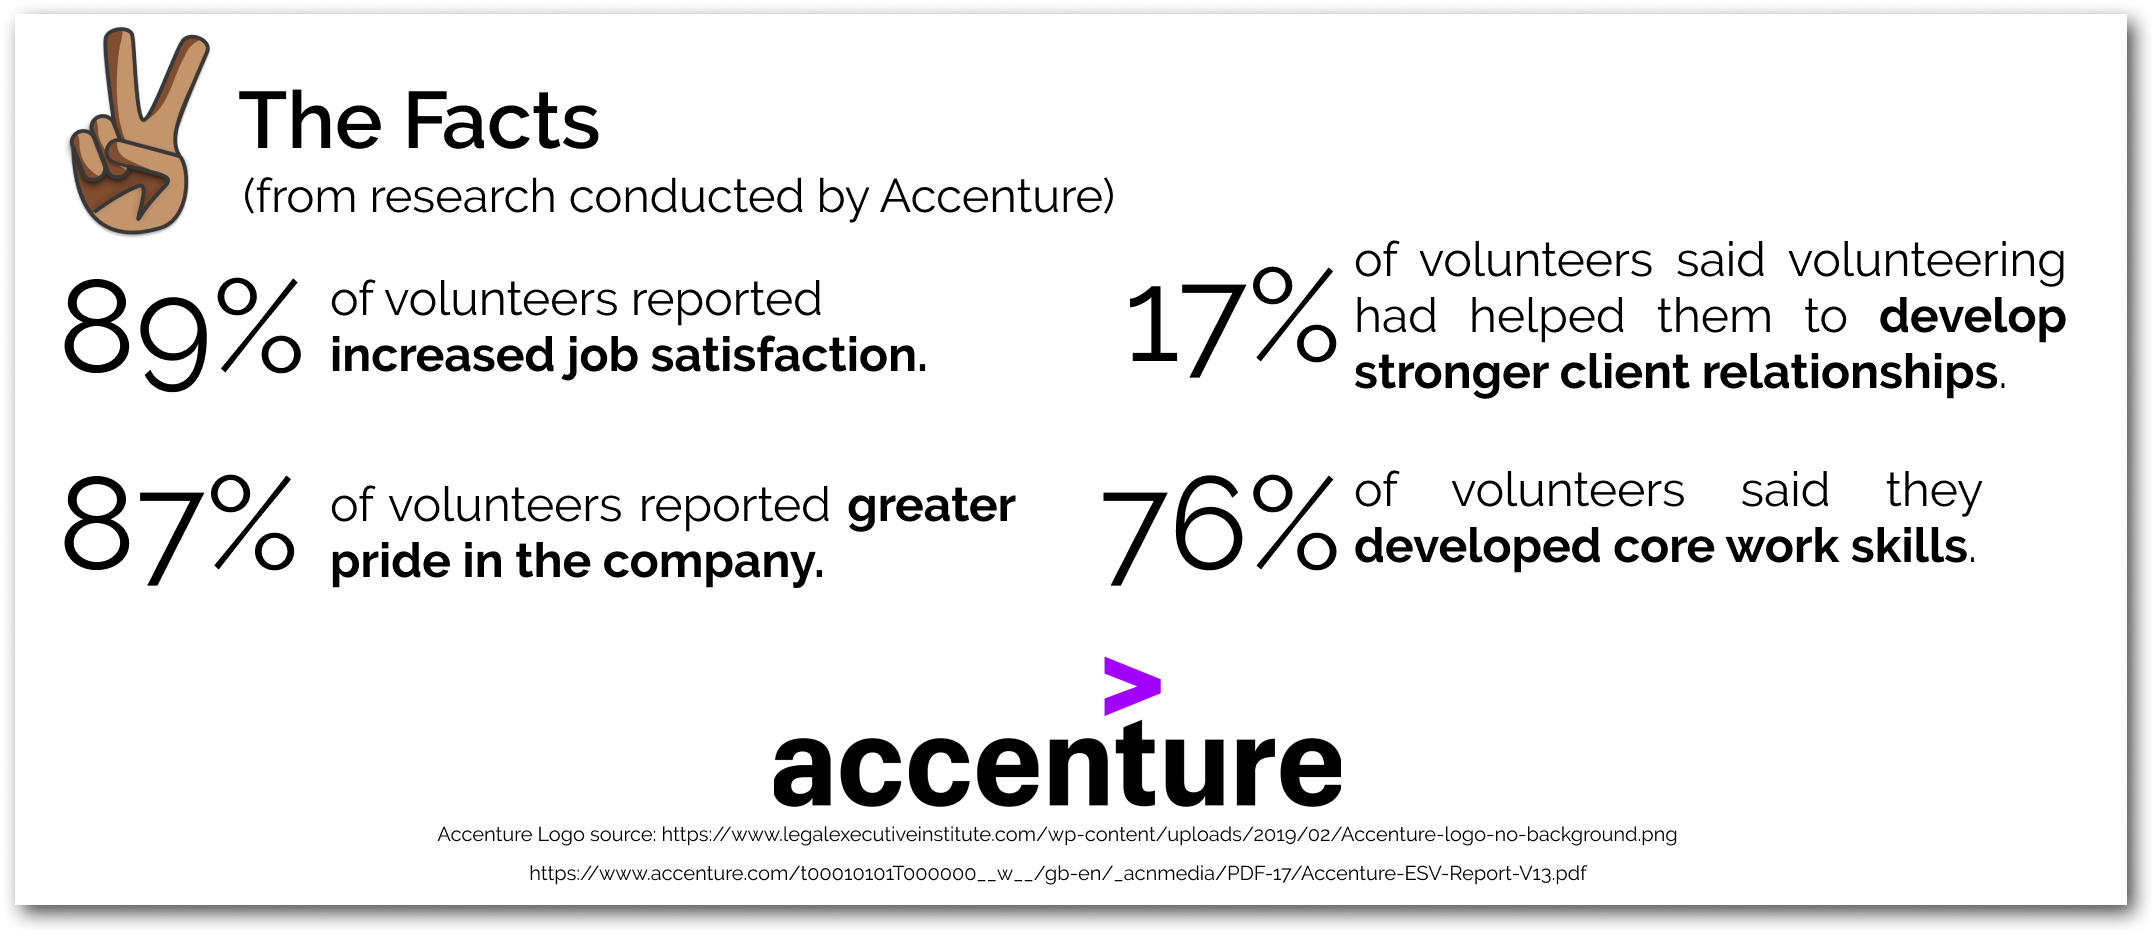 Facts from research conducted by Accenture